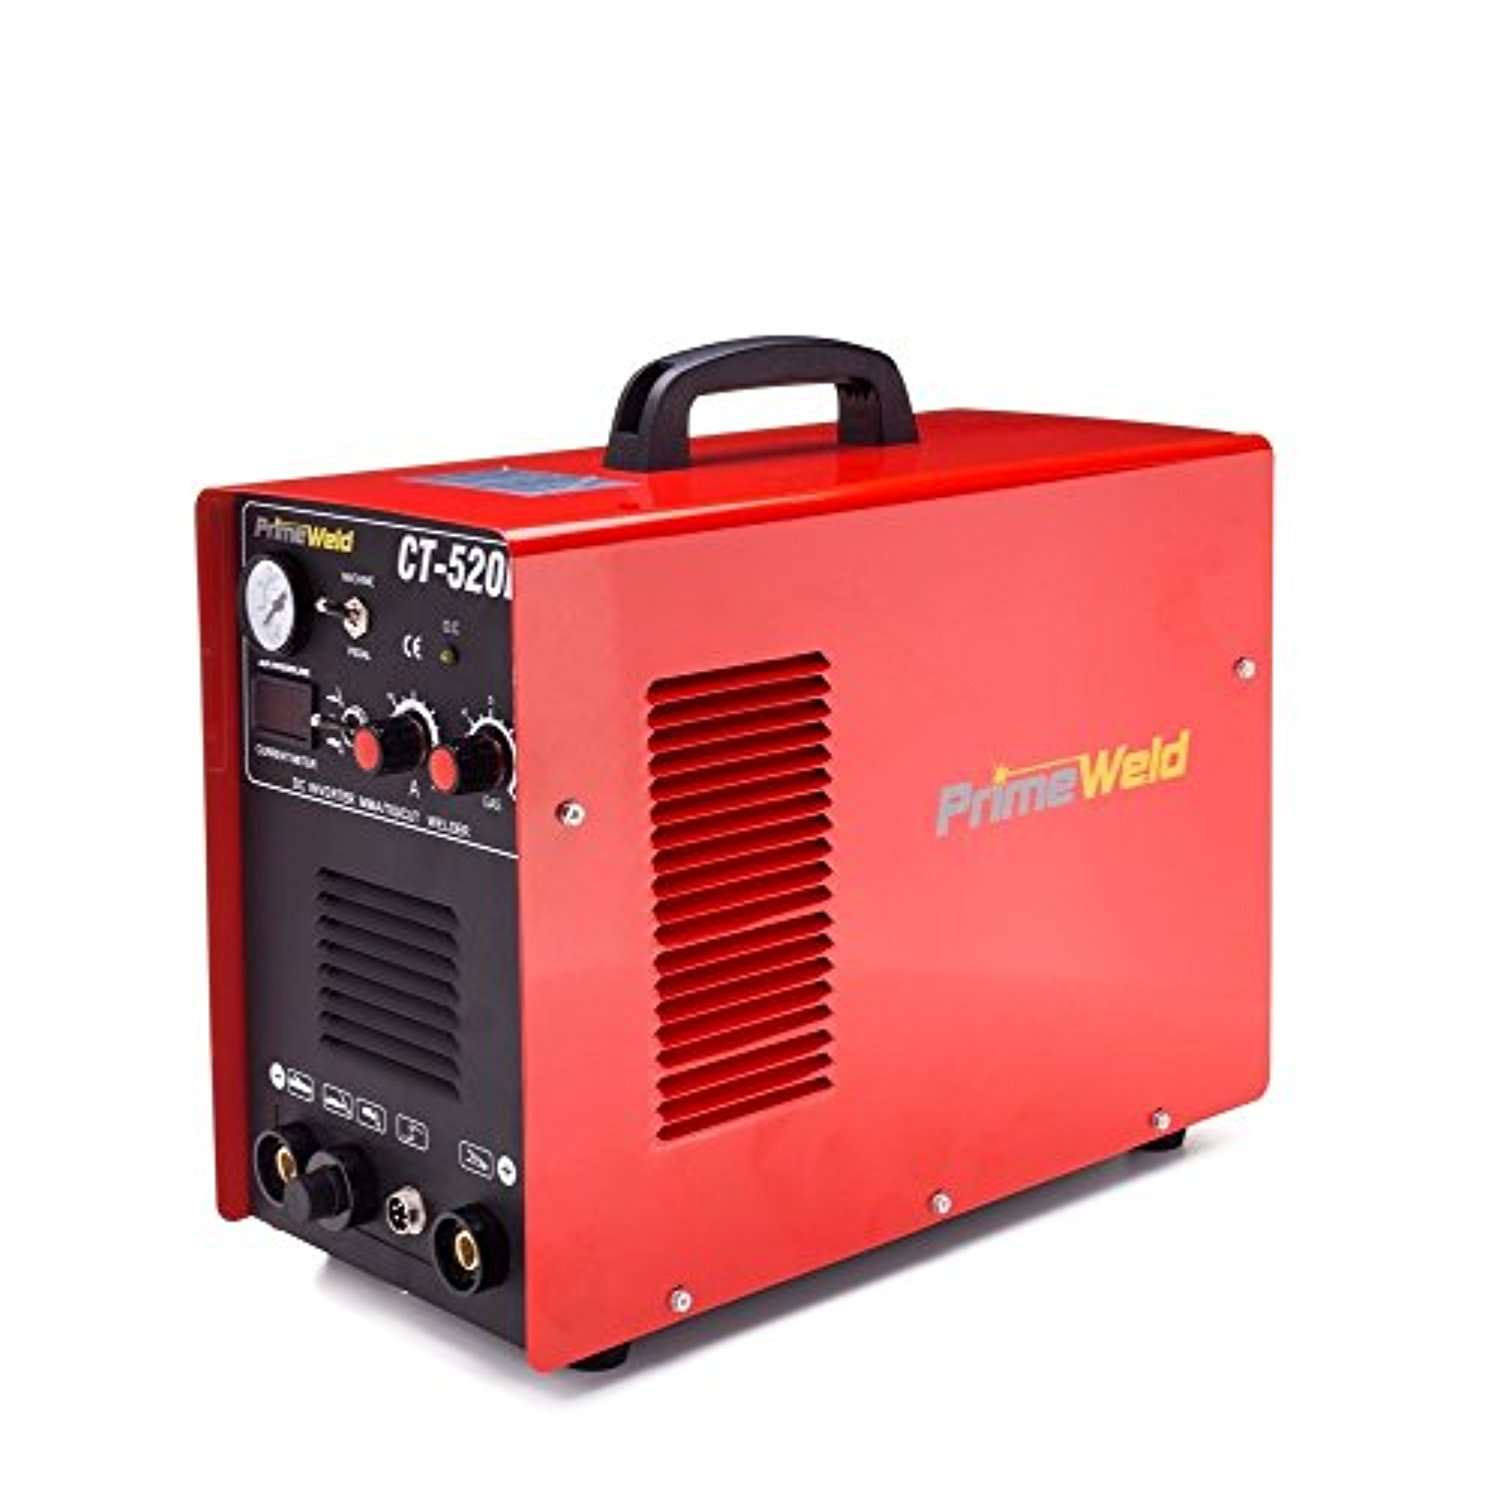 Primeweld Ct520d 50 Amps Plasma Cutter, 200 Amps Tig Welder and 200 Amps Stick Welder... by